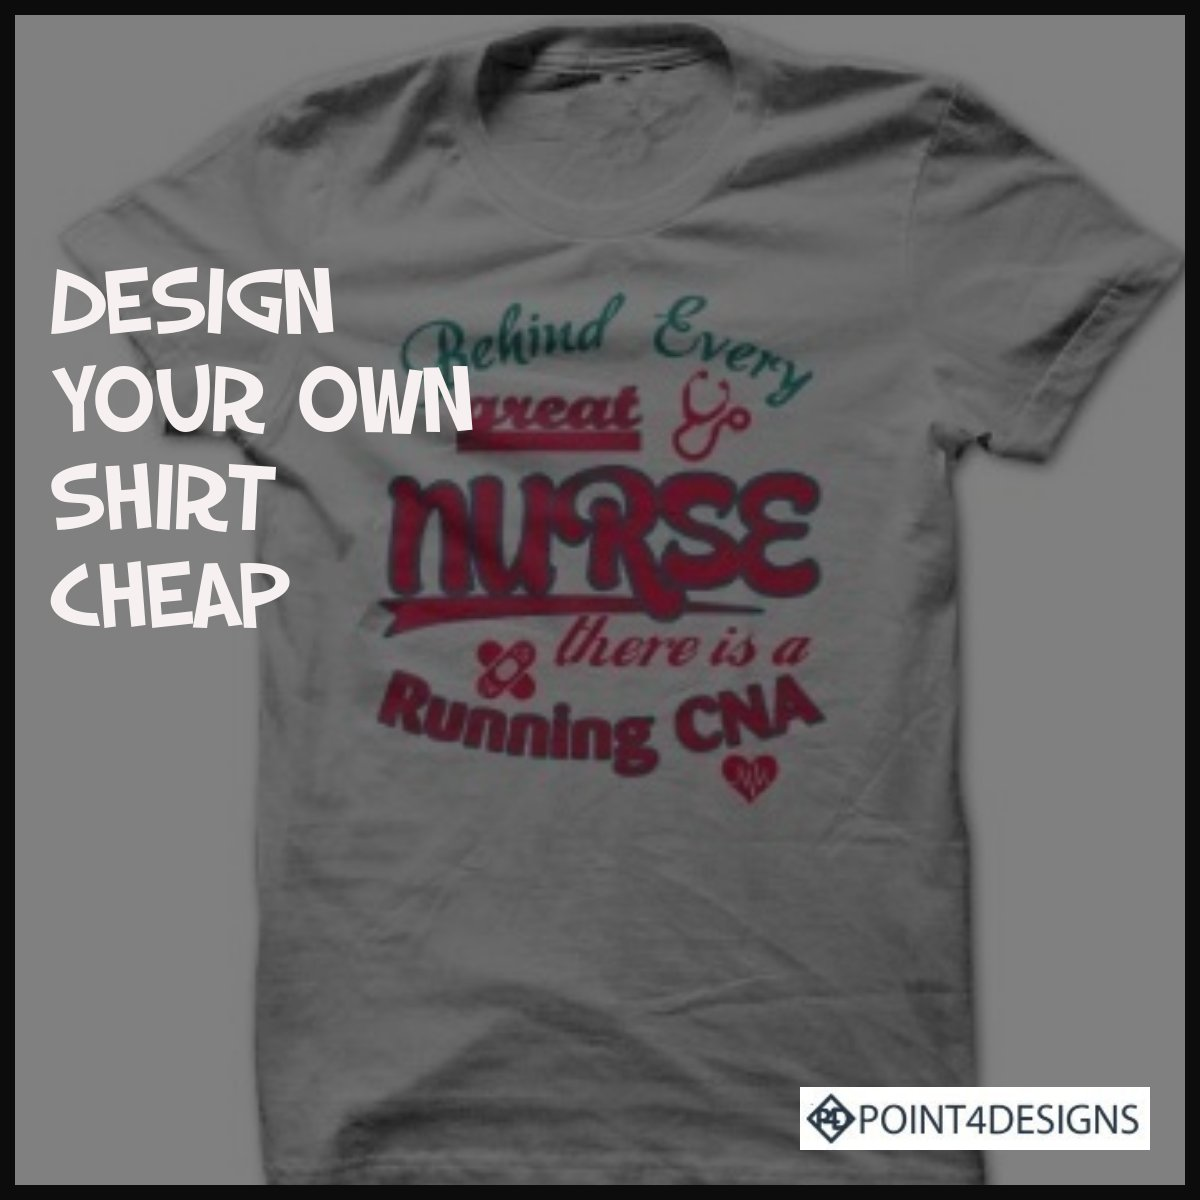 Design Your Own Shirt Cheap No Minimum